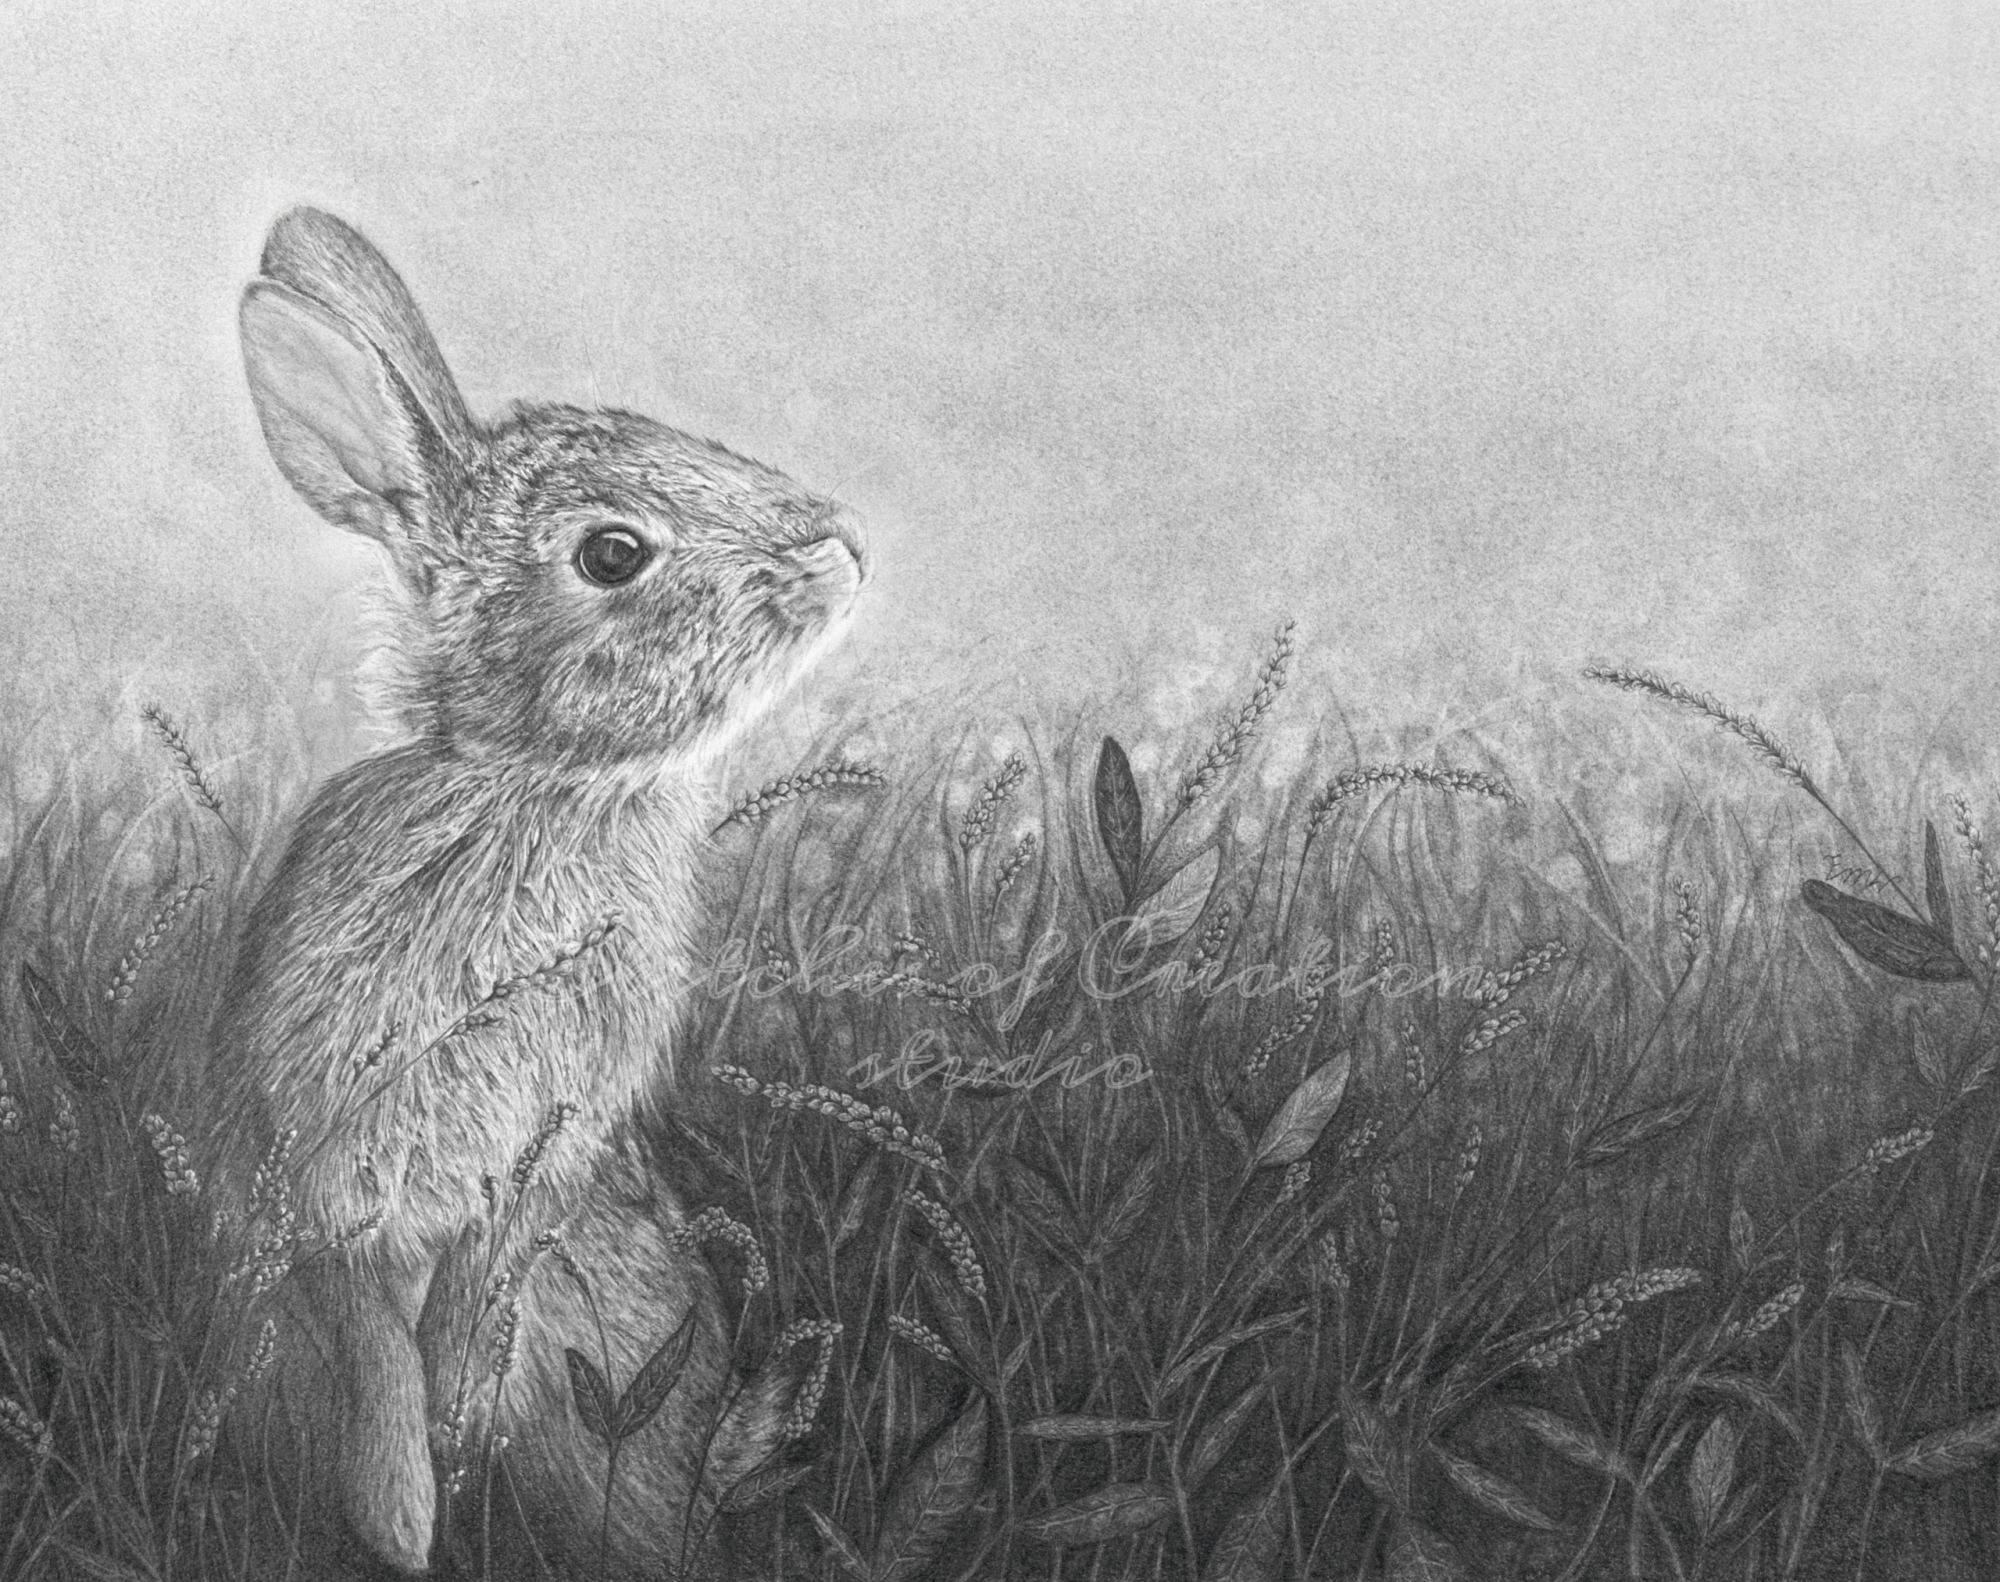 'Curious' a drawing of a Rabbit looking up in a flied of Lady's Thumb. 11x14 inches. Completed July 2020